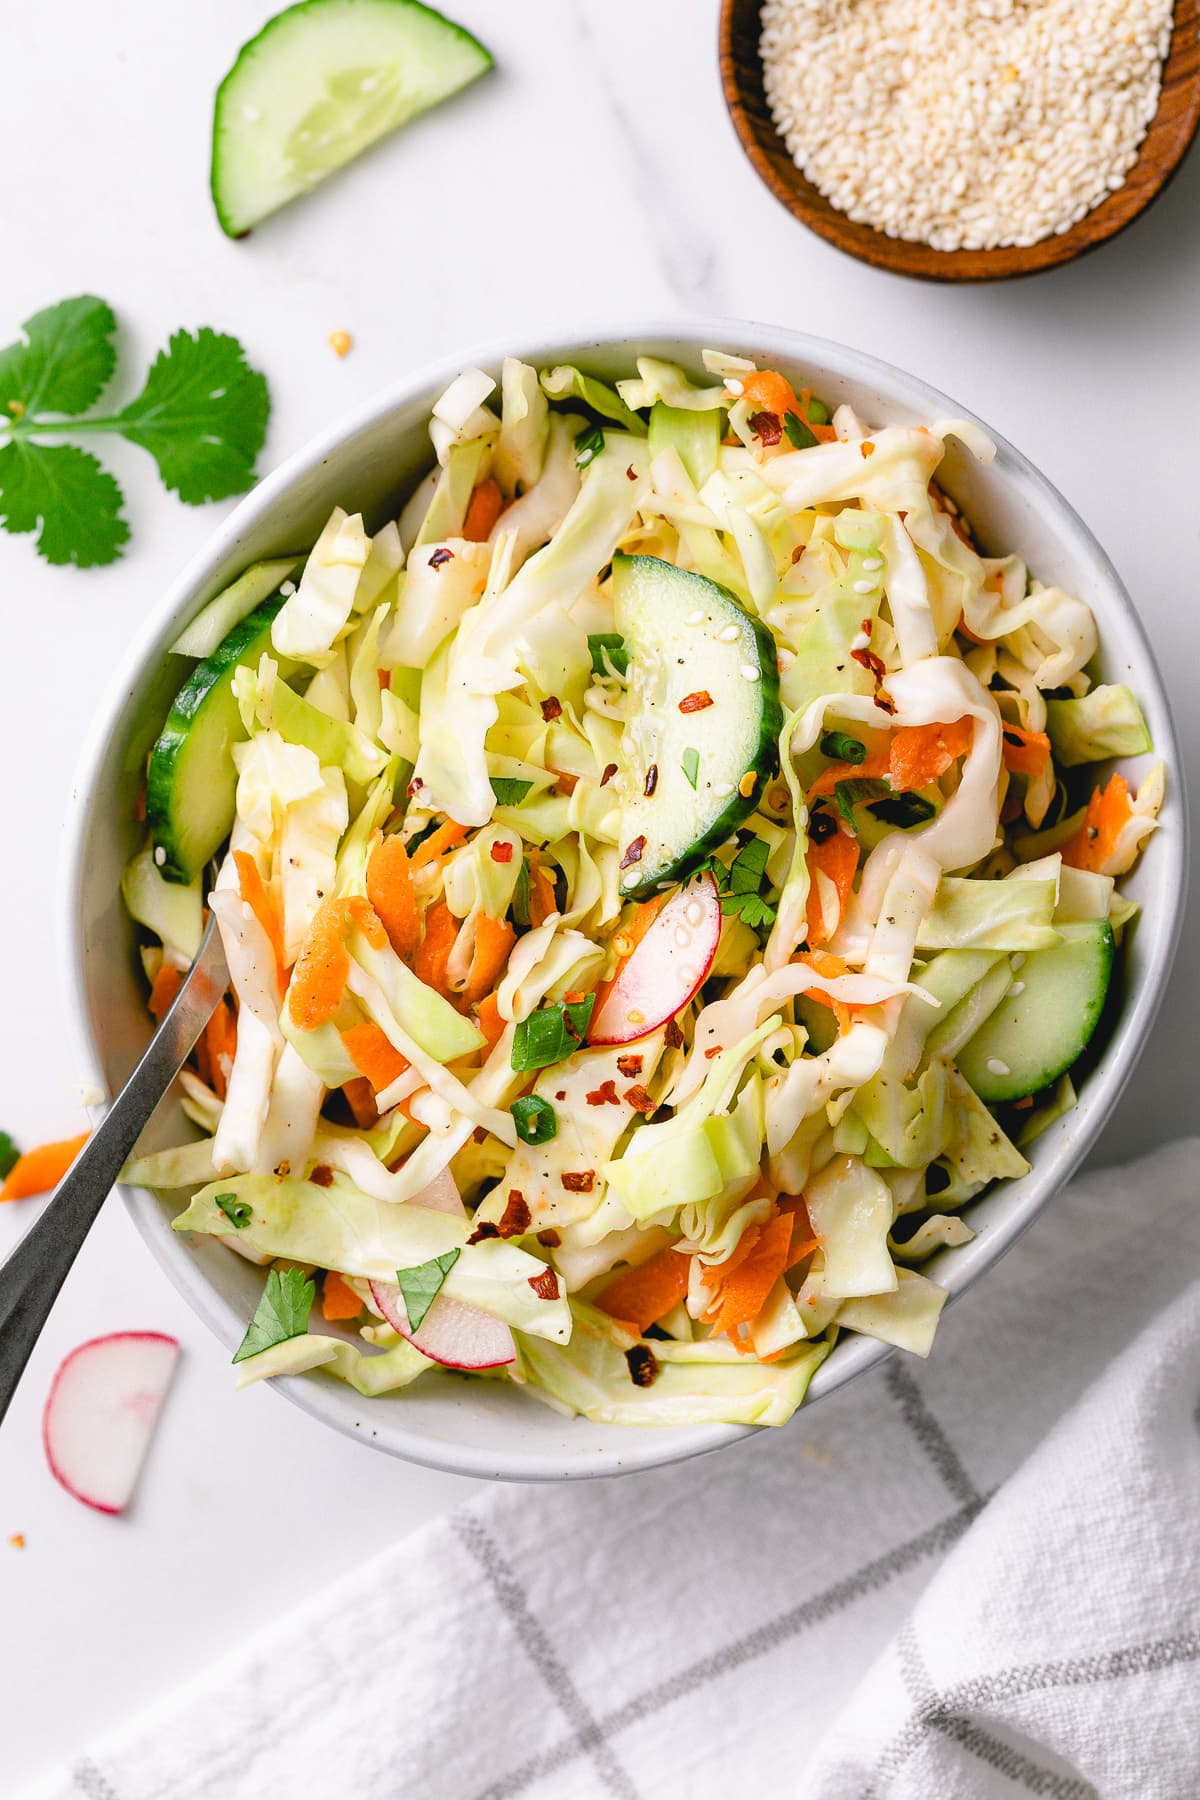 top down view of small bowl with healthy cabbage salad.